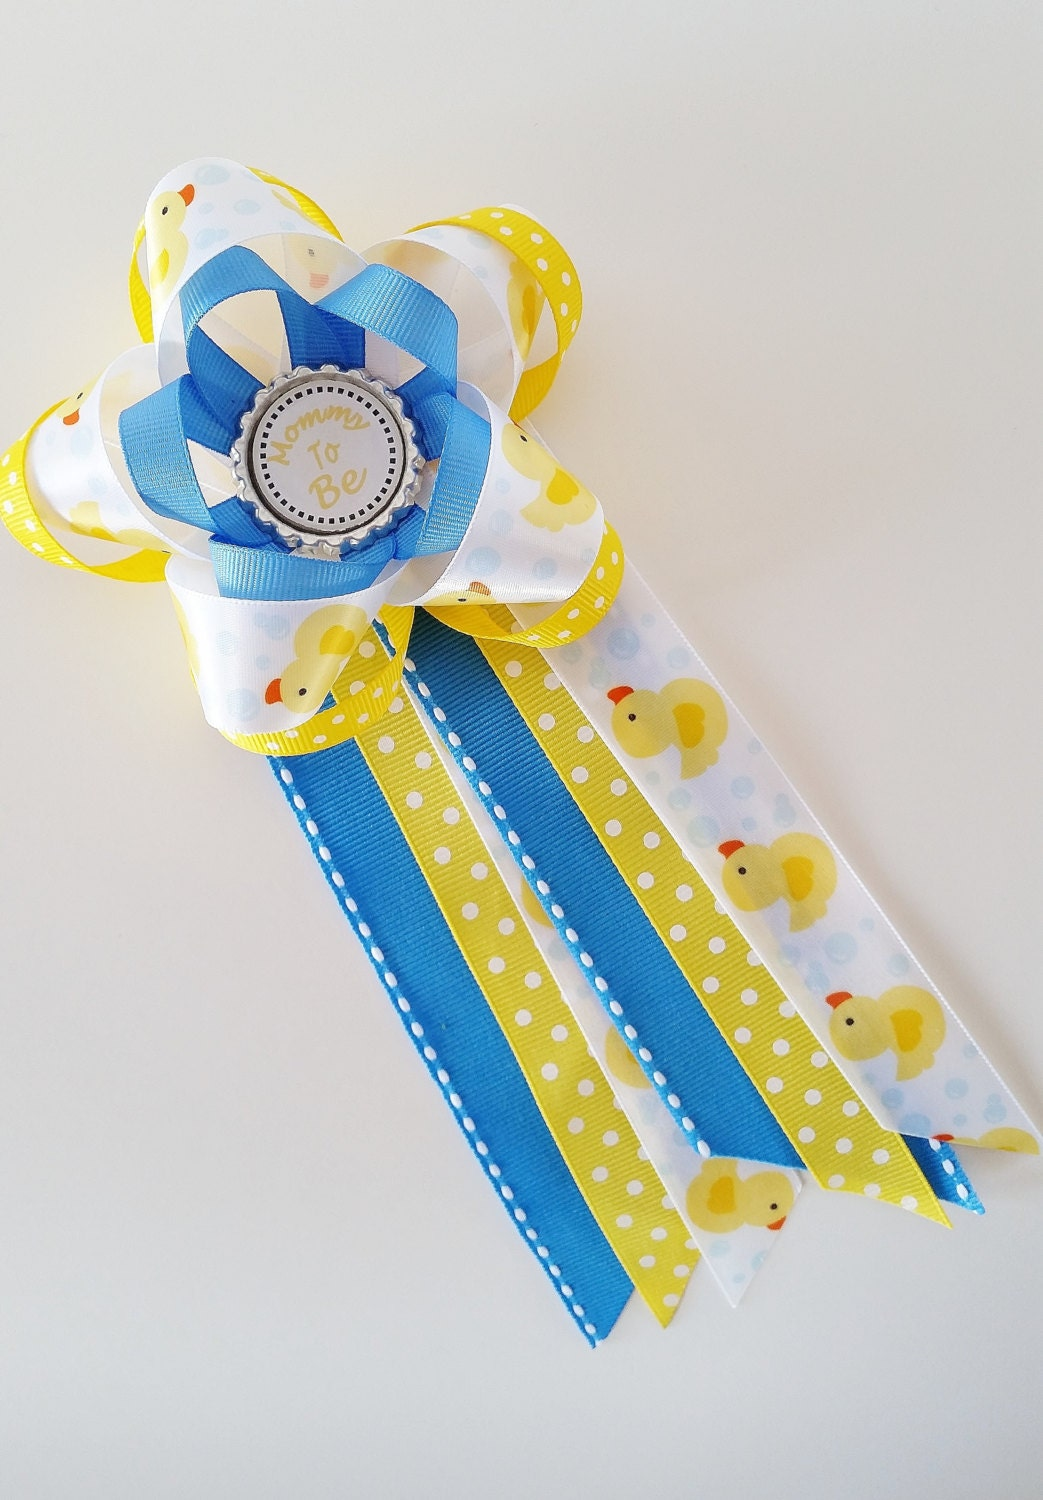 Rubber ducky bathroom accessories - Rubber Ducky Baby Shower Corsage Mommy To Be Pin Baby Shower Mum Grandma